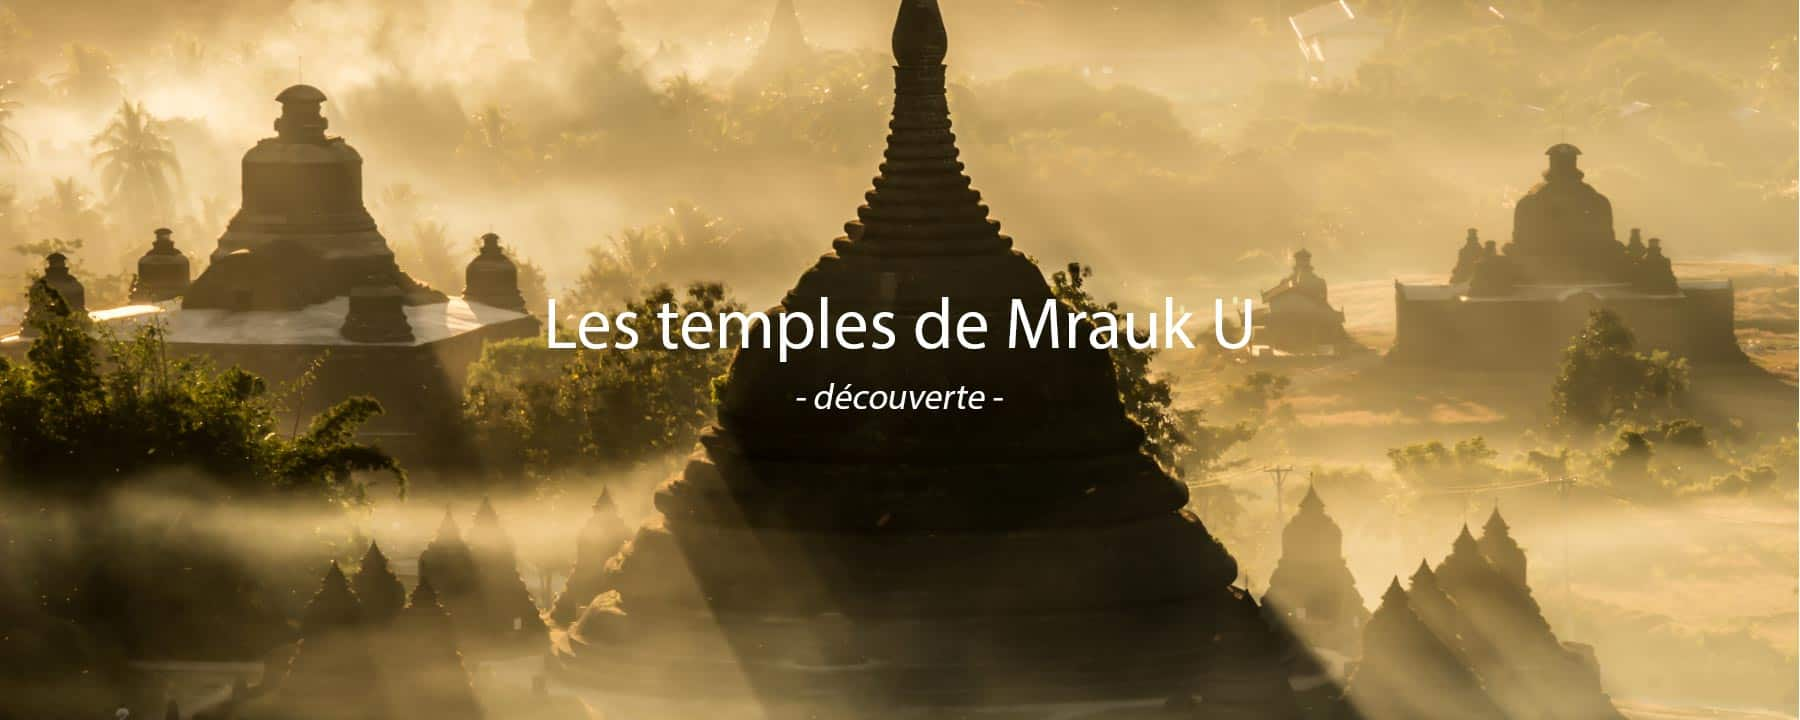 photo temples mrauk u birmanie